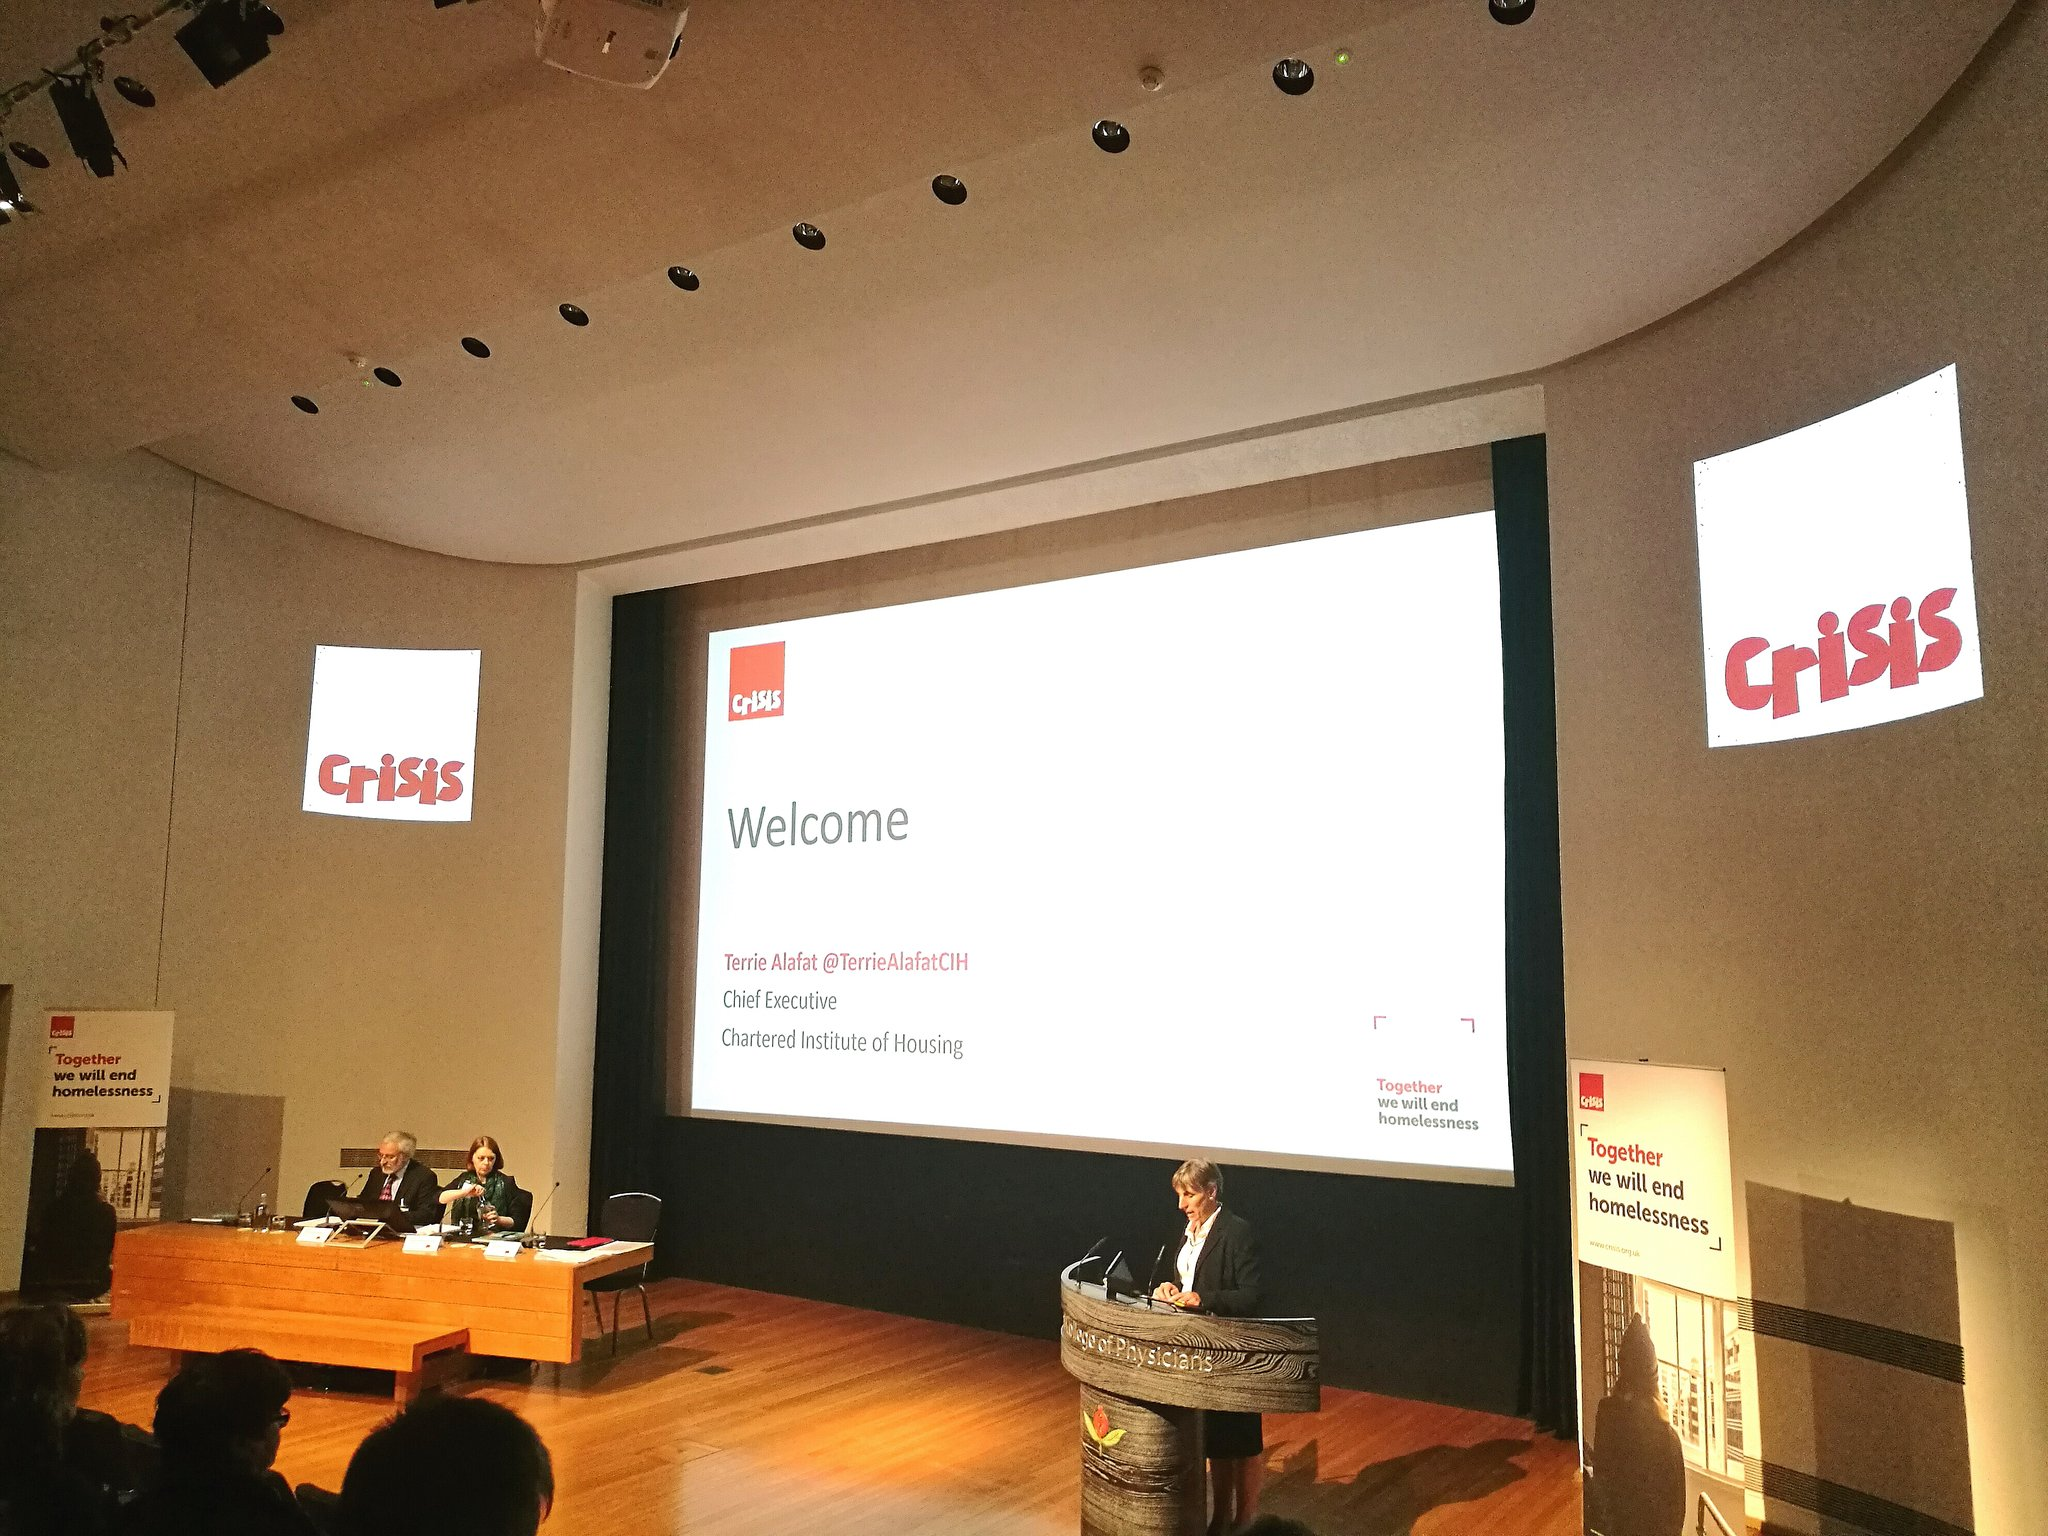 #CrisisConf kicks off with @TerrieAlafatCIH challenging us to actually win this battle to end homelessness. A challenge we need to rise to. https://t.co/IWDRvXZZTM